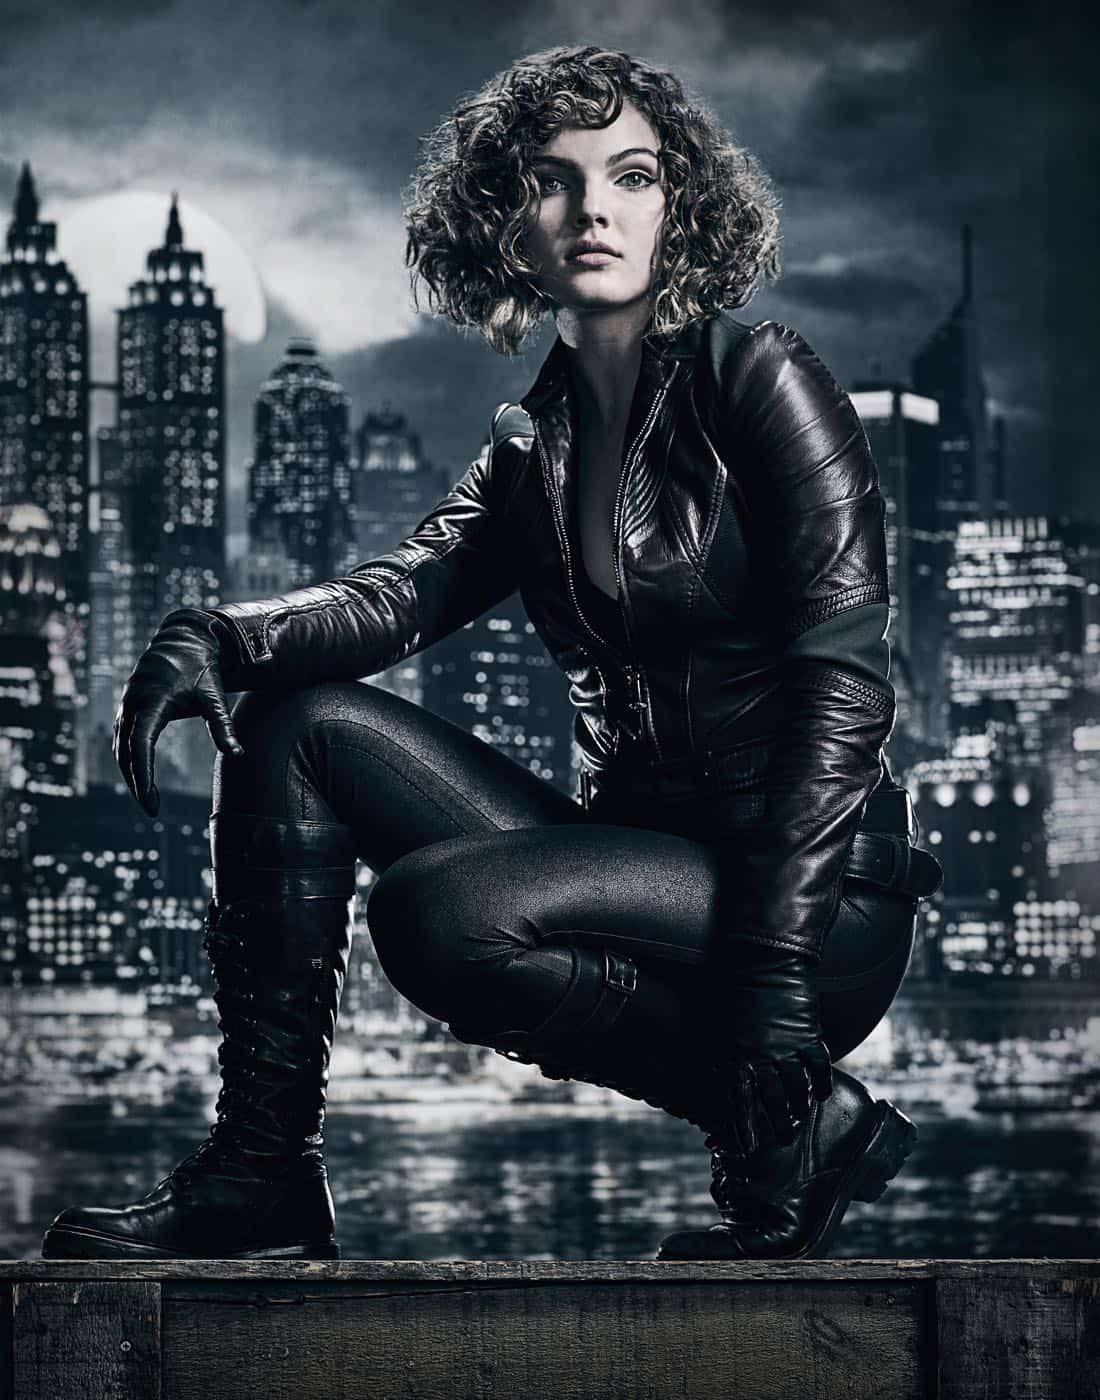 Camren Bicondova. Season 4 of GOTHAM